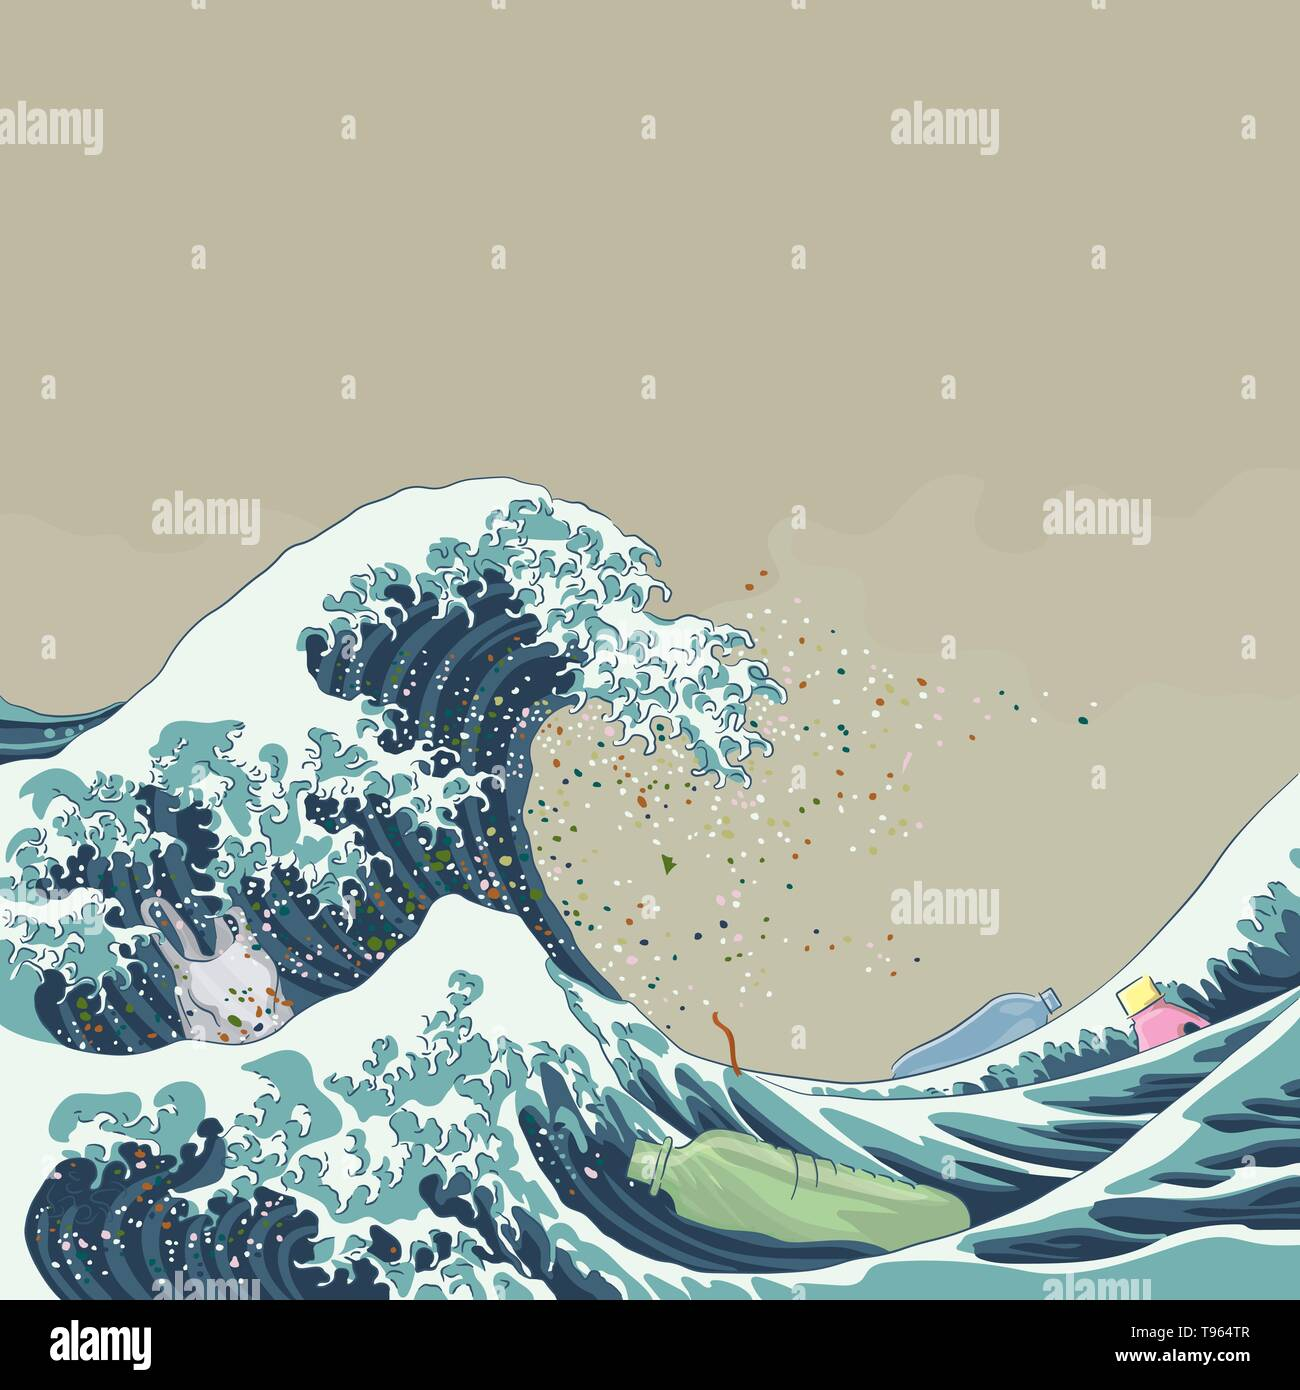 Aquatic plastic pollution concept. Great Wave of microplastic, japanese woodblock printing style vector illustration - Stock Image